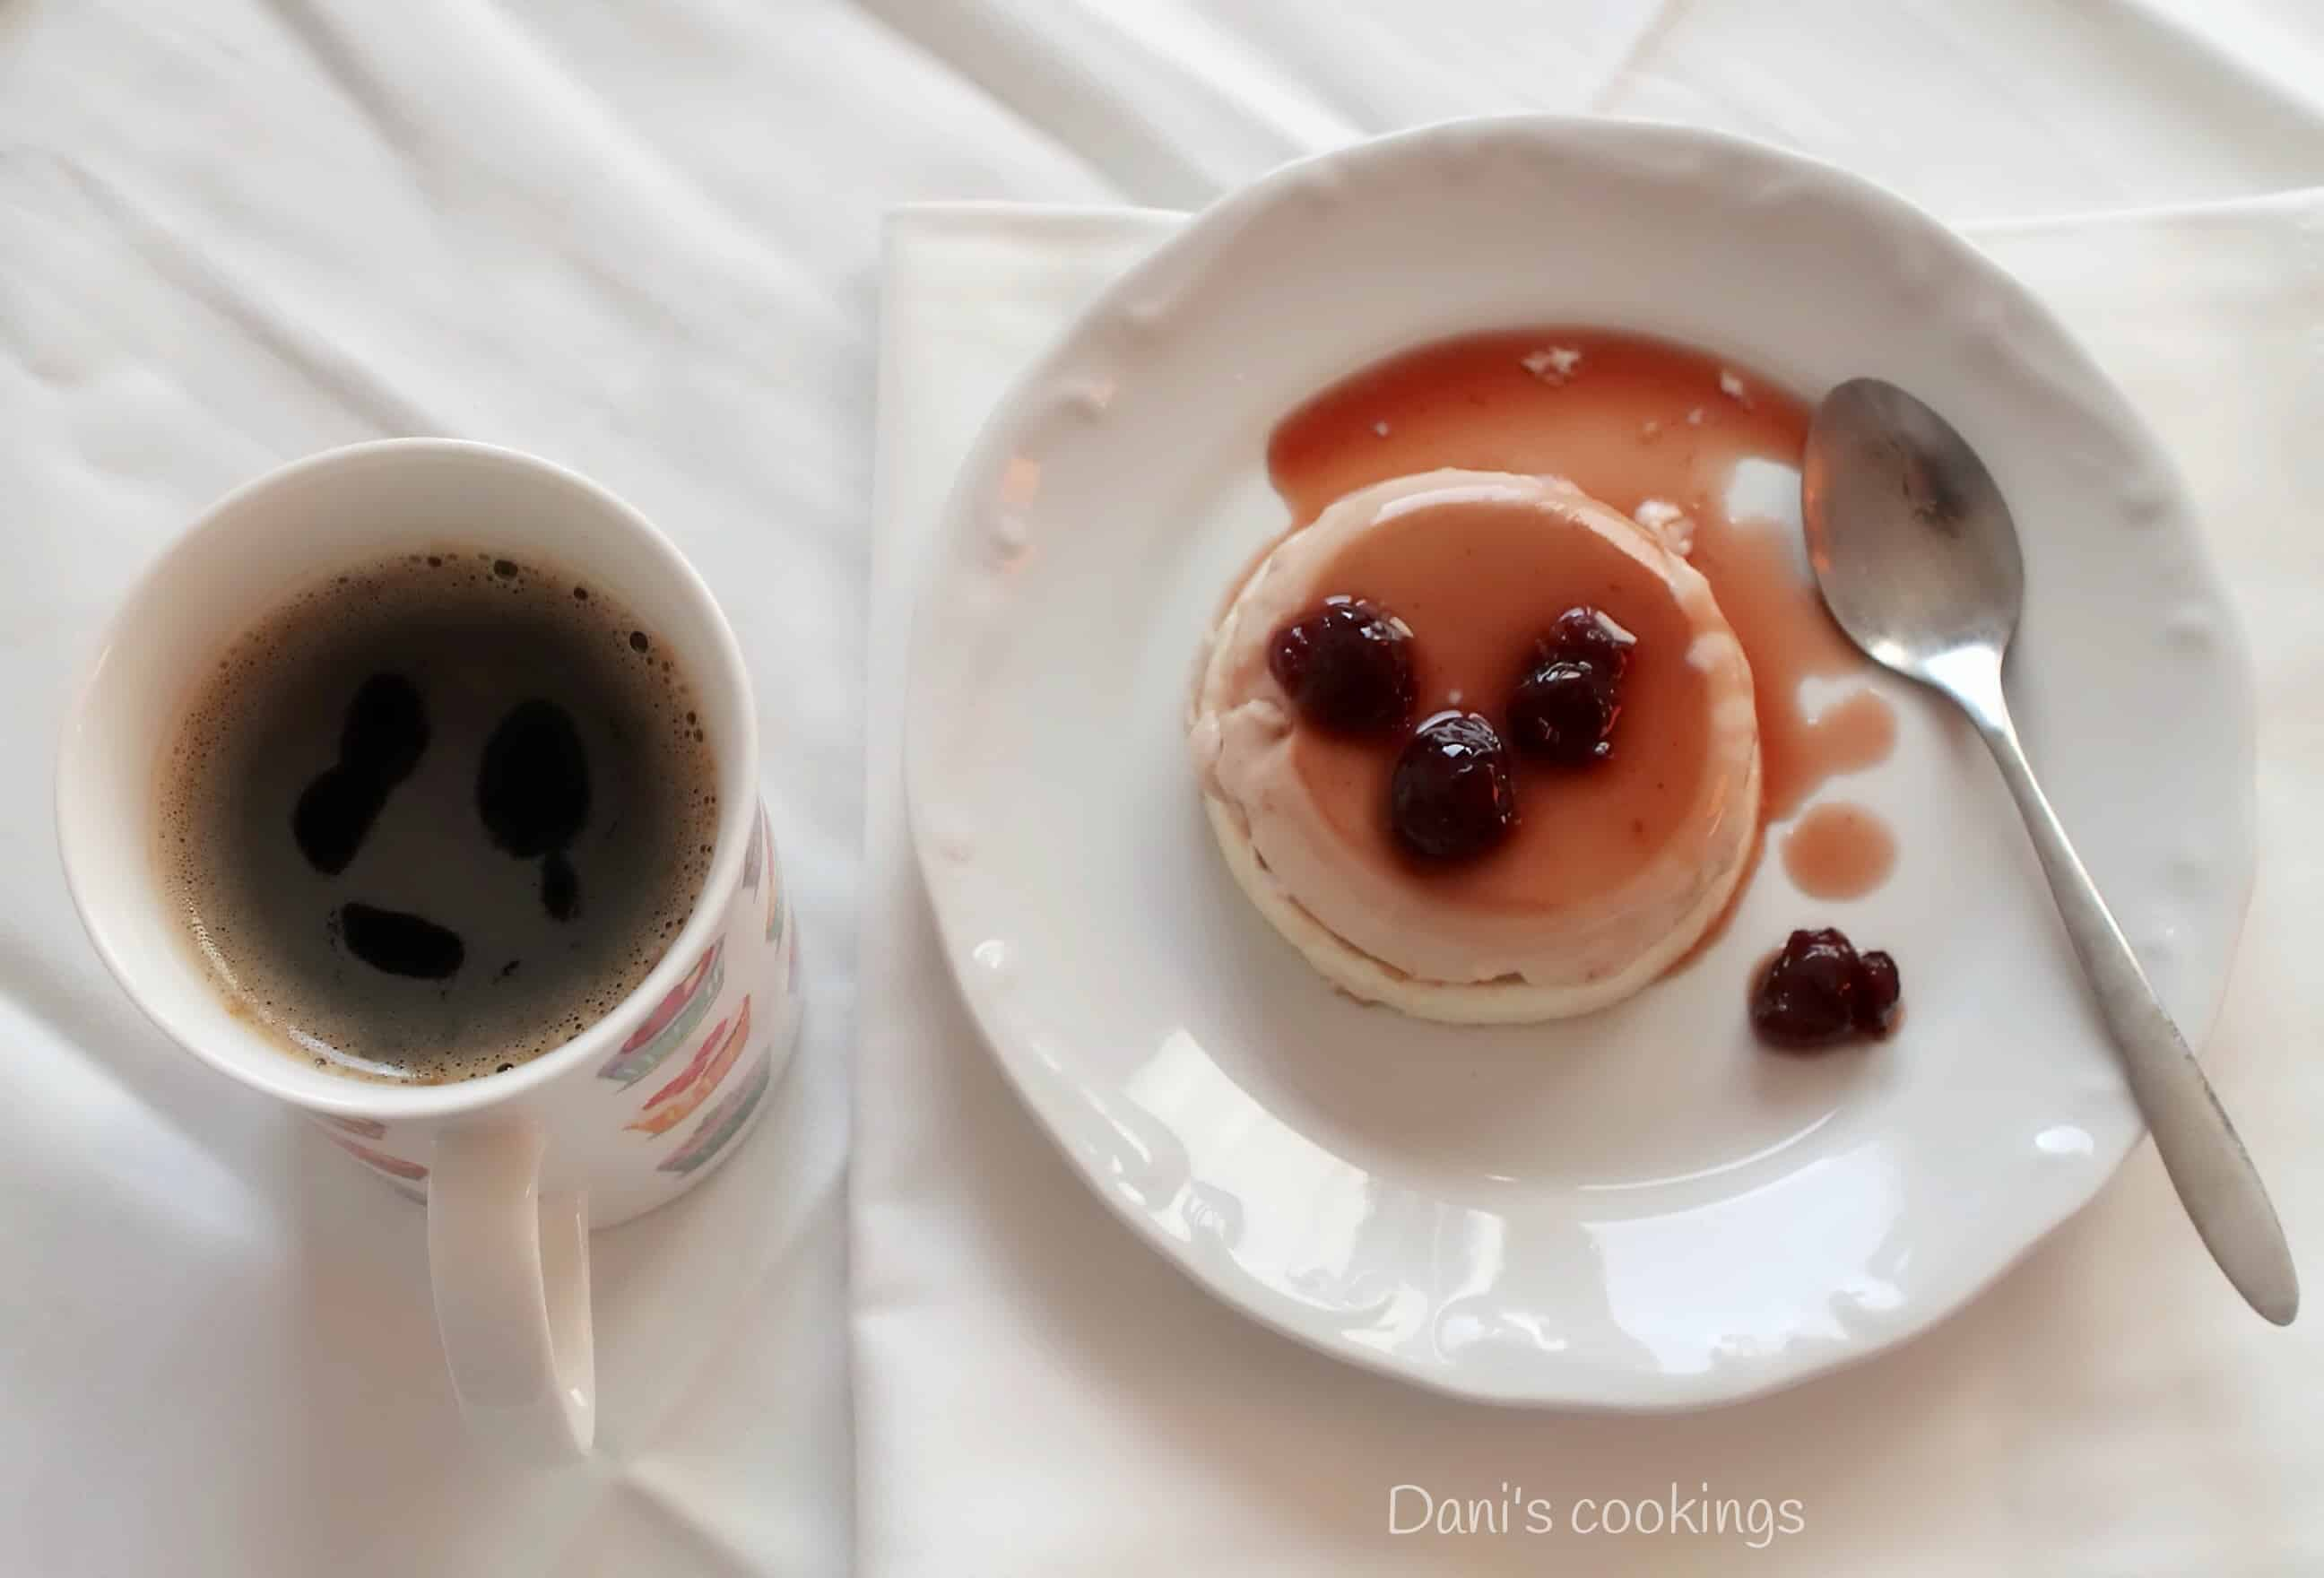 panna cotta with jam on a plate and a cup of coffee on a side